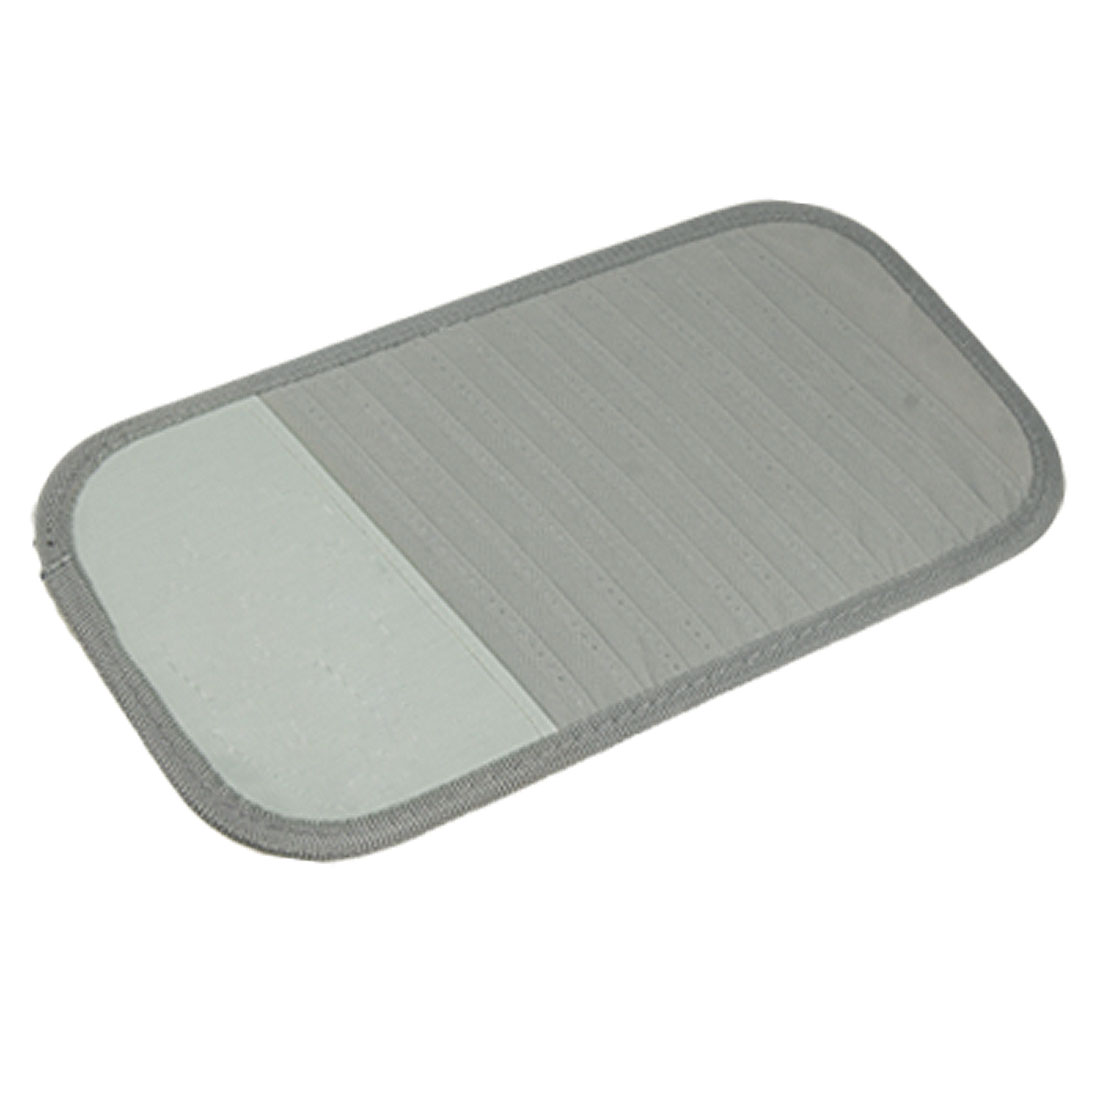 New Grey Car Sun Visor 12 Disc CD DVD Card Case Wallet Storage Holder Organizer